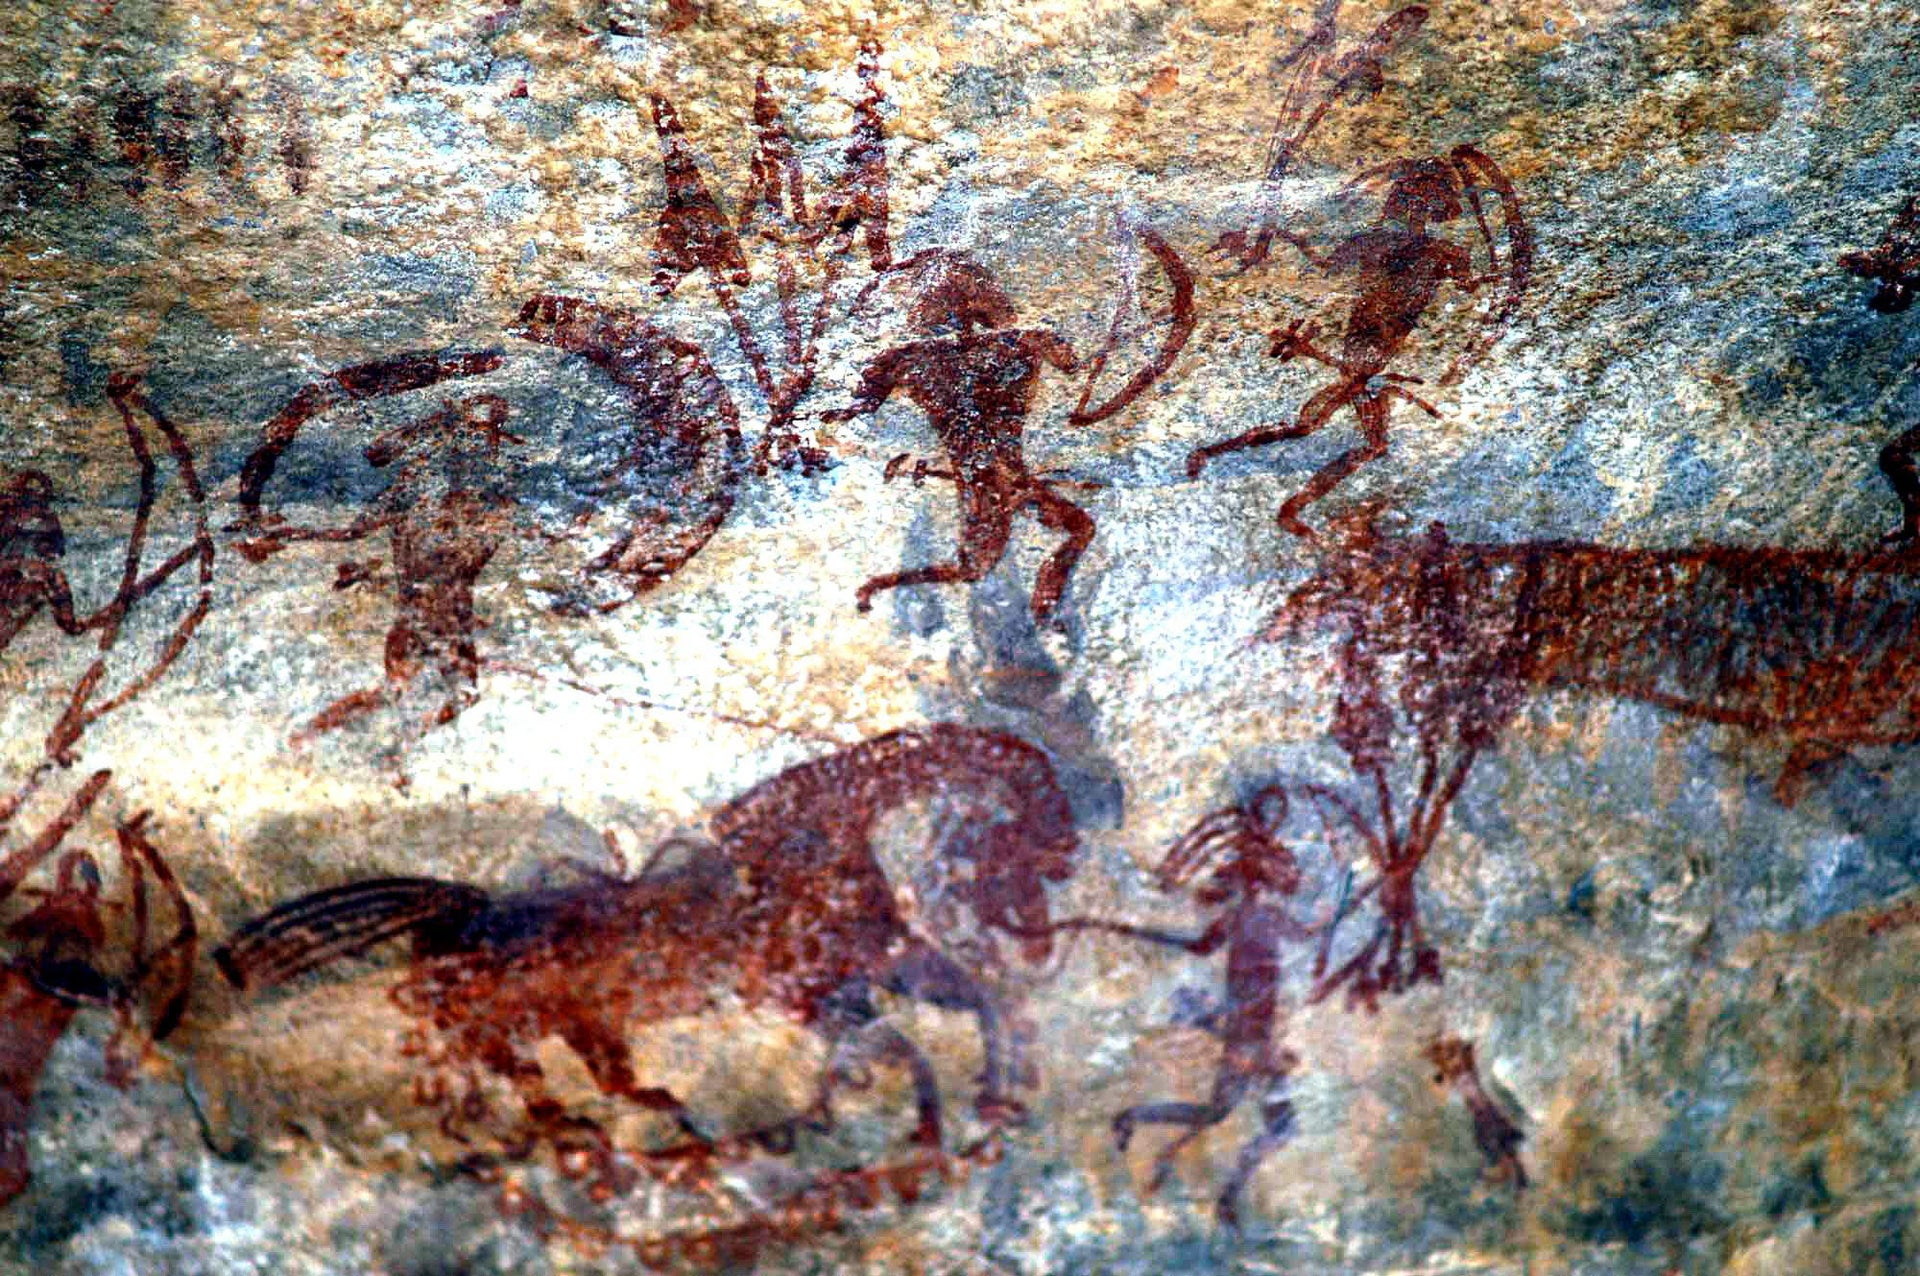 war scene is shown in one of the cave painting in Bhimbetka